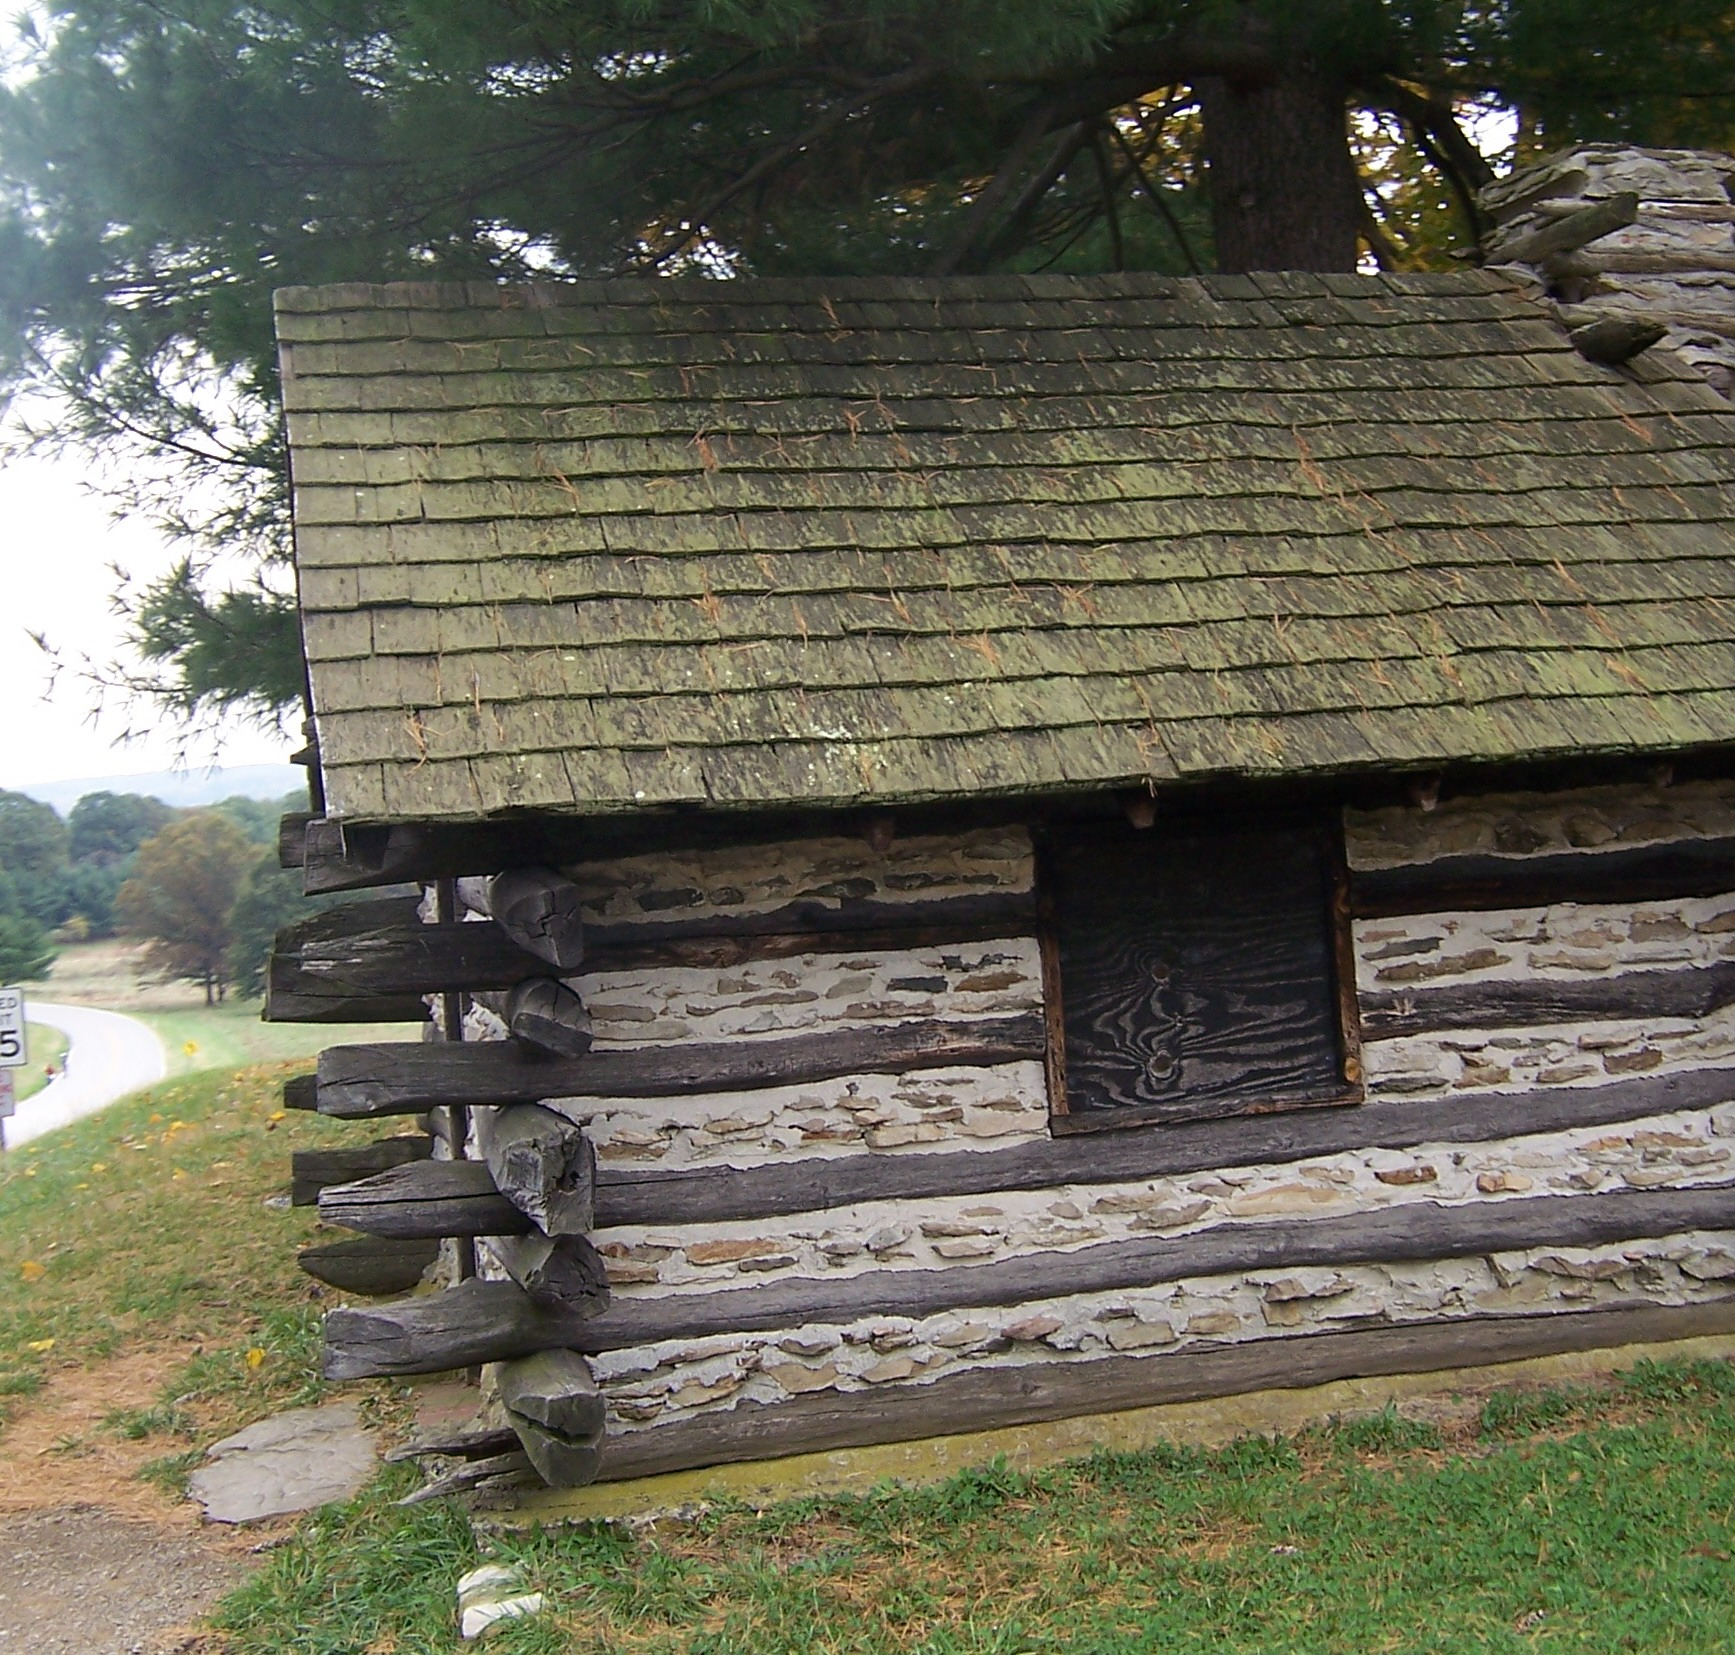 Valley forge park cabin photo